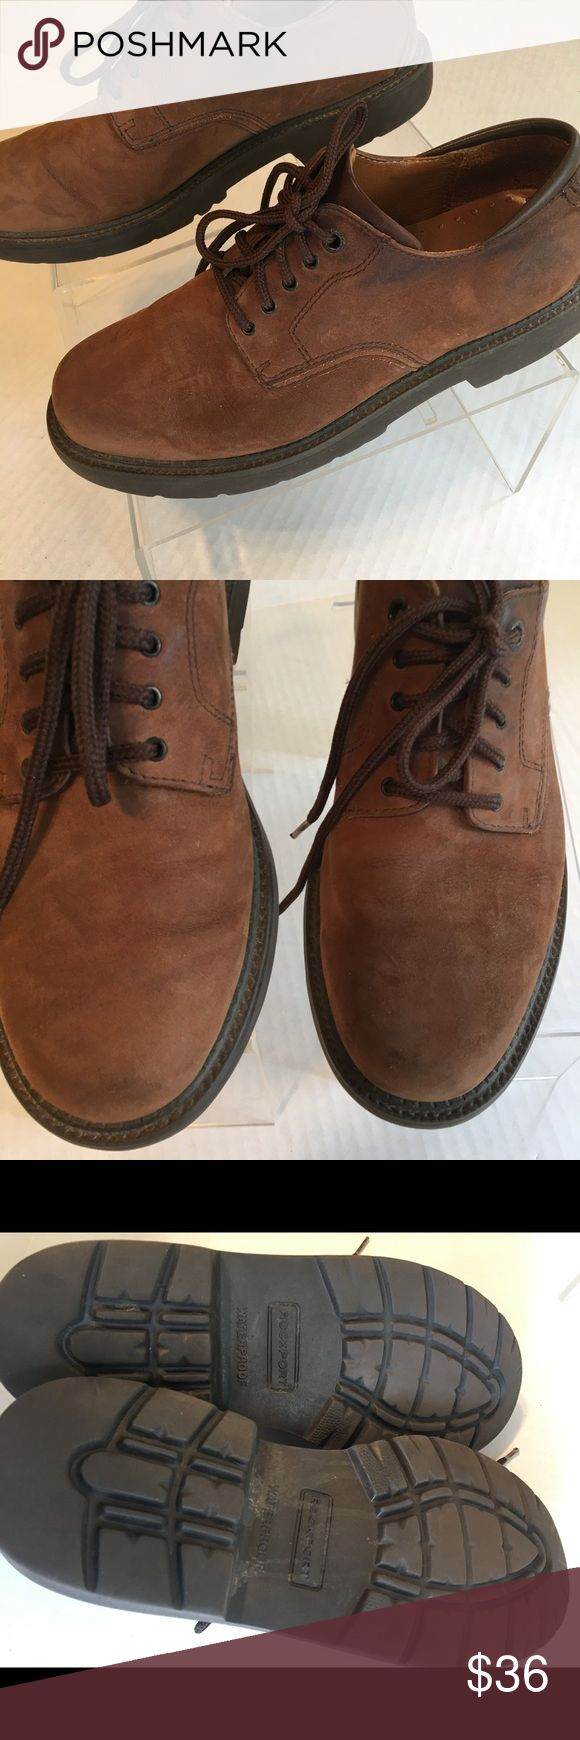 NWOT Rockport Waterproof Shoes These brand new Rockport shoes are made of beautiful nubuck leather. You can tread the roughest terrain in these rugged boots. Hydro Shield construction makes shoes waterproof to ensure your feet stay dry and comfortable. Color is expresso brown. Rockport Shoes Boots